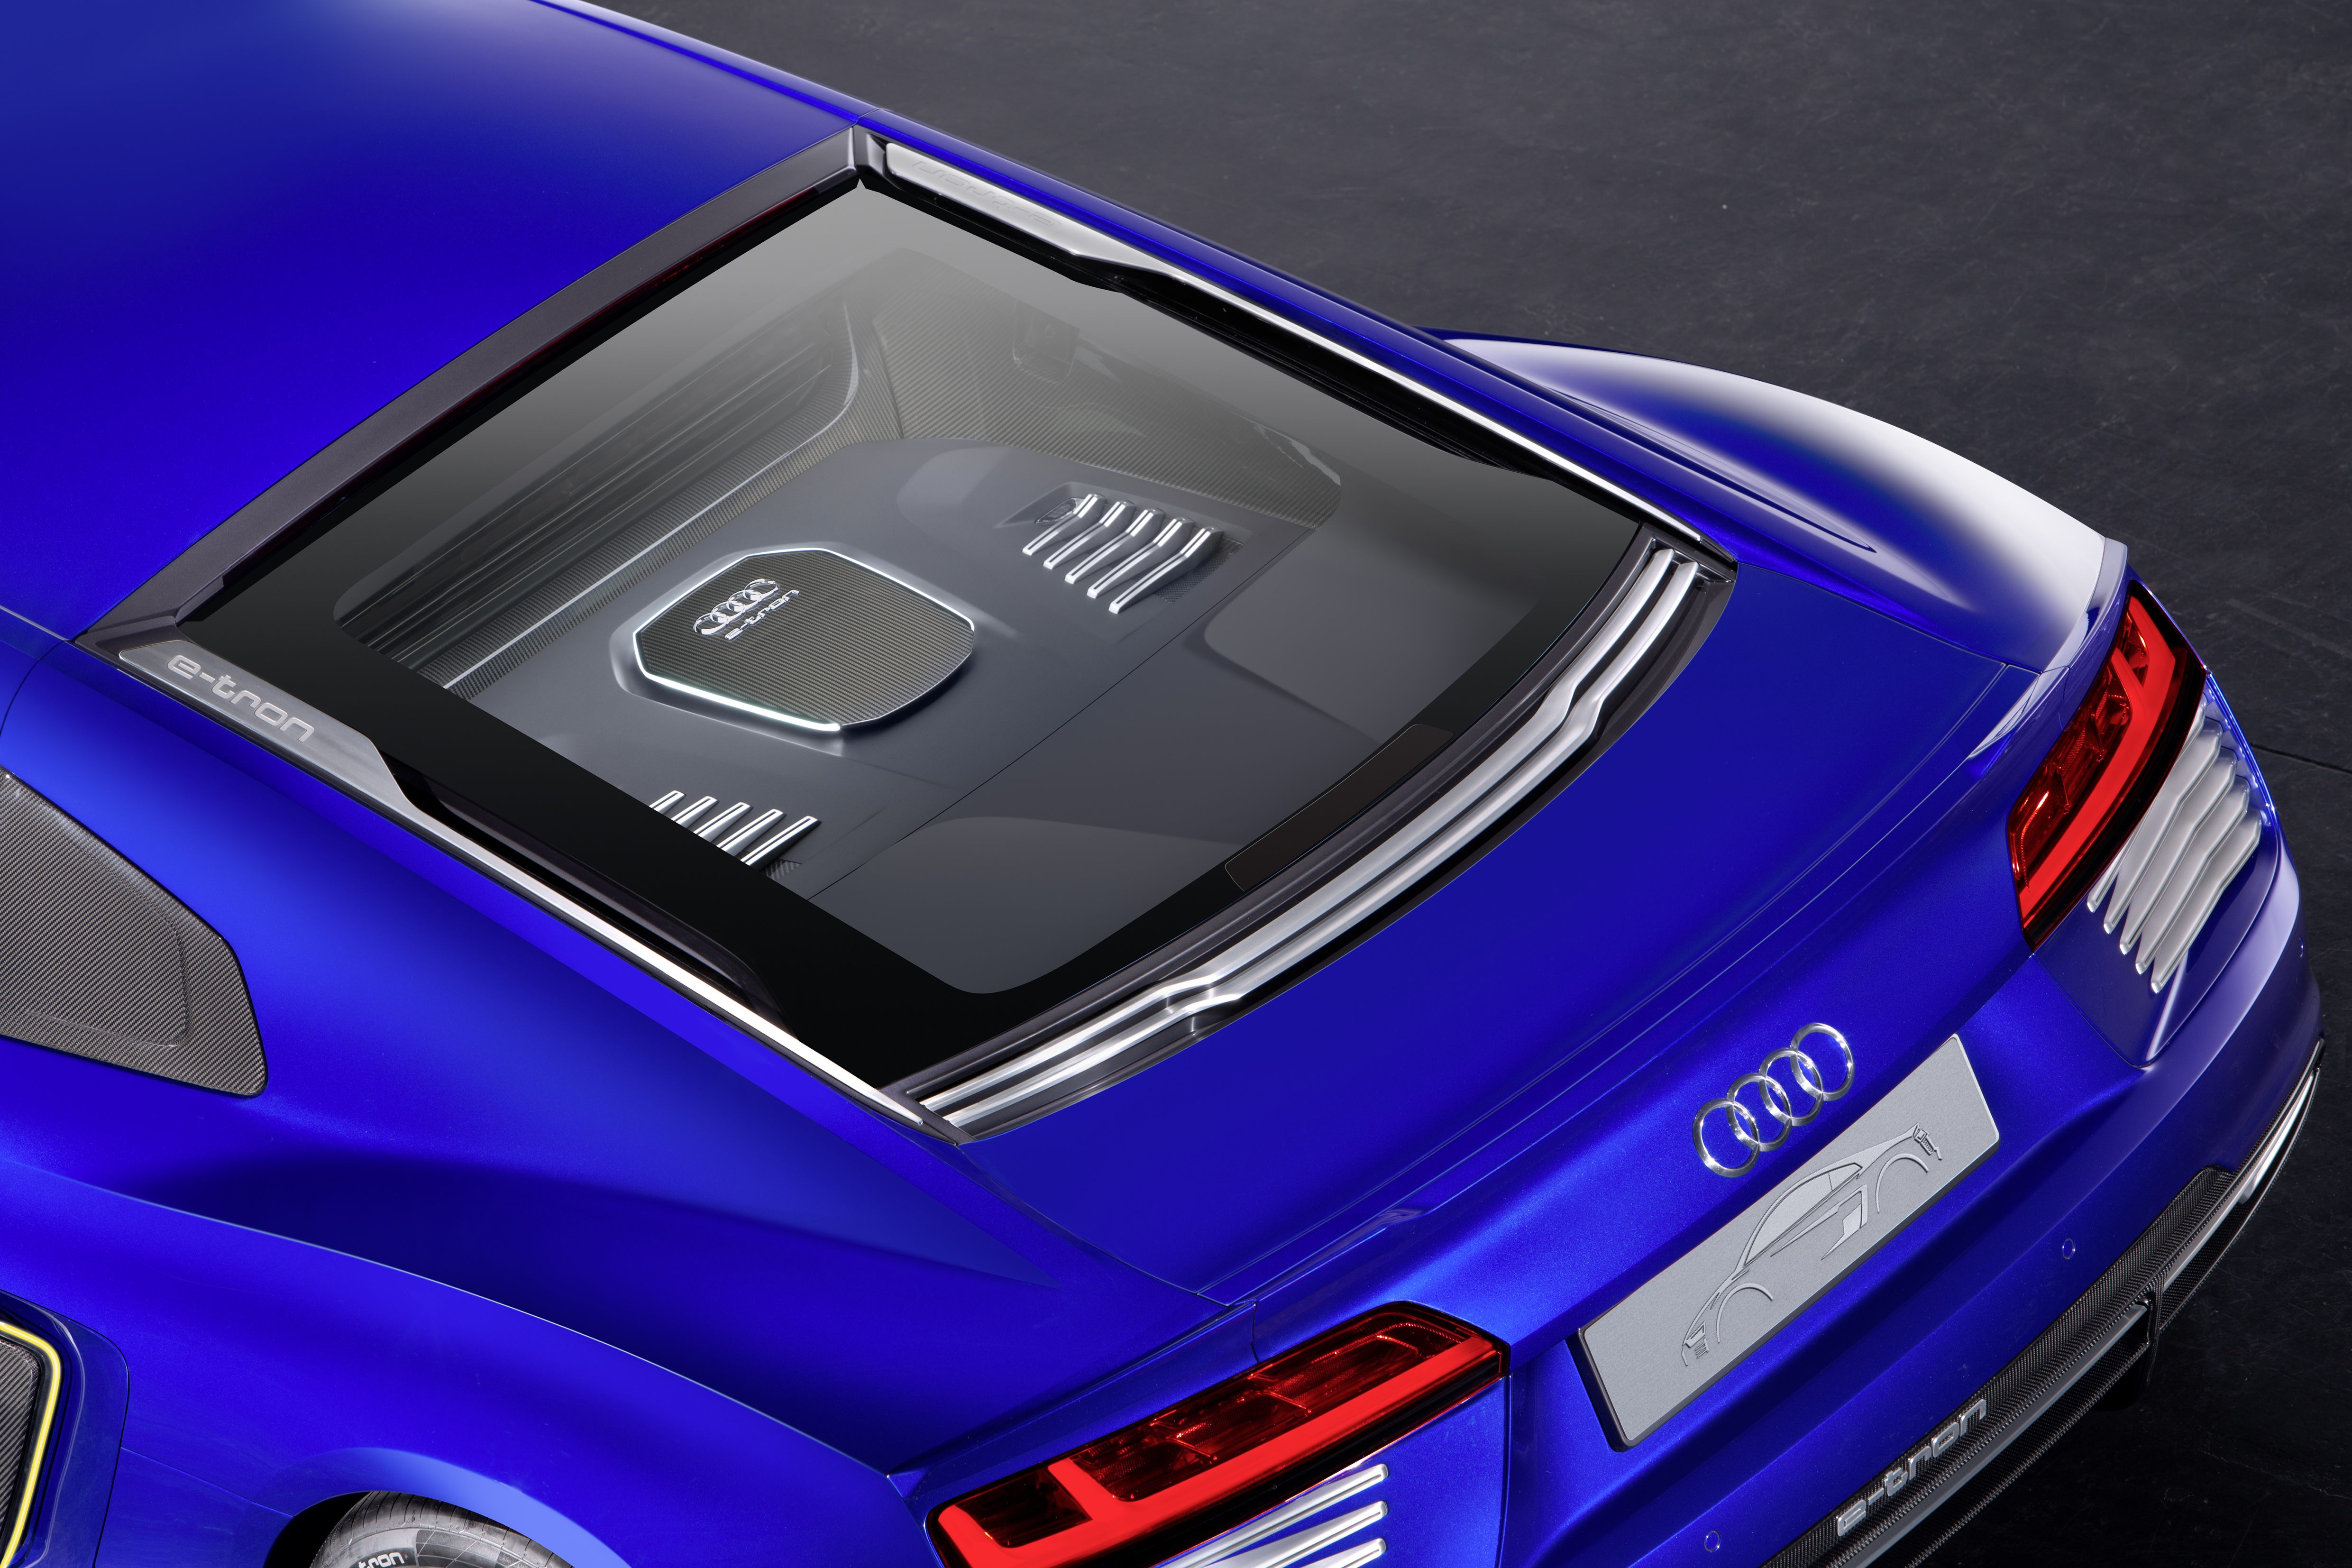 Audi R8 e-tron Piloted driving Concept Model design and specs